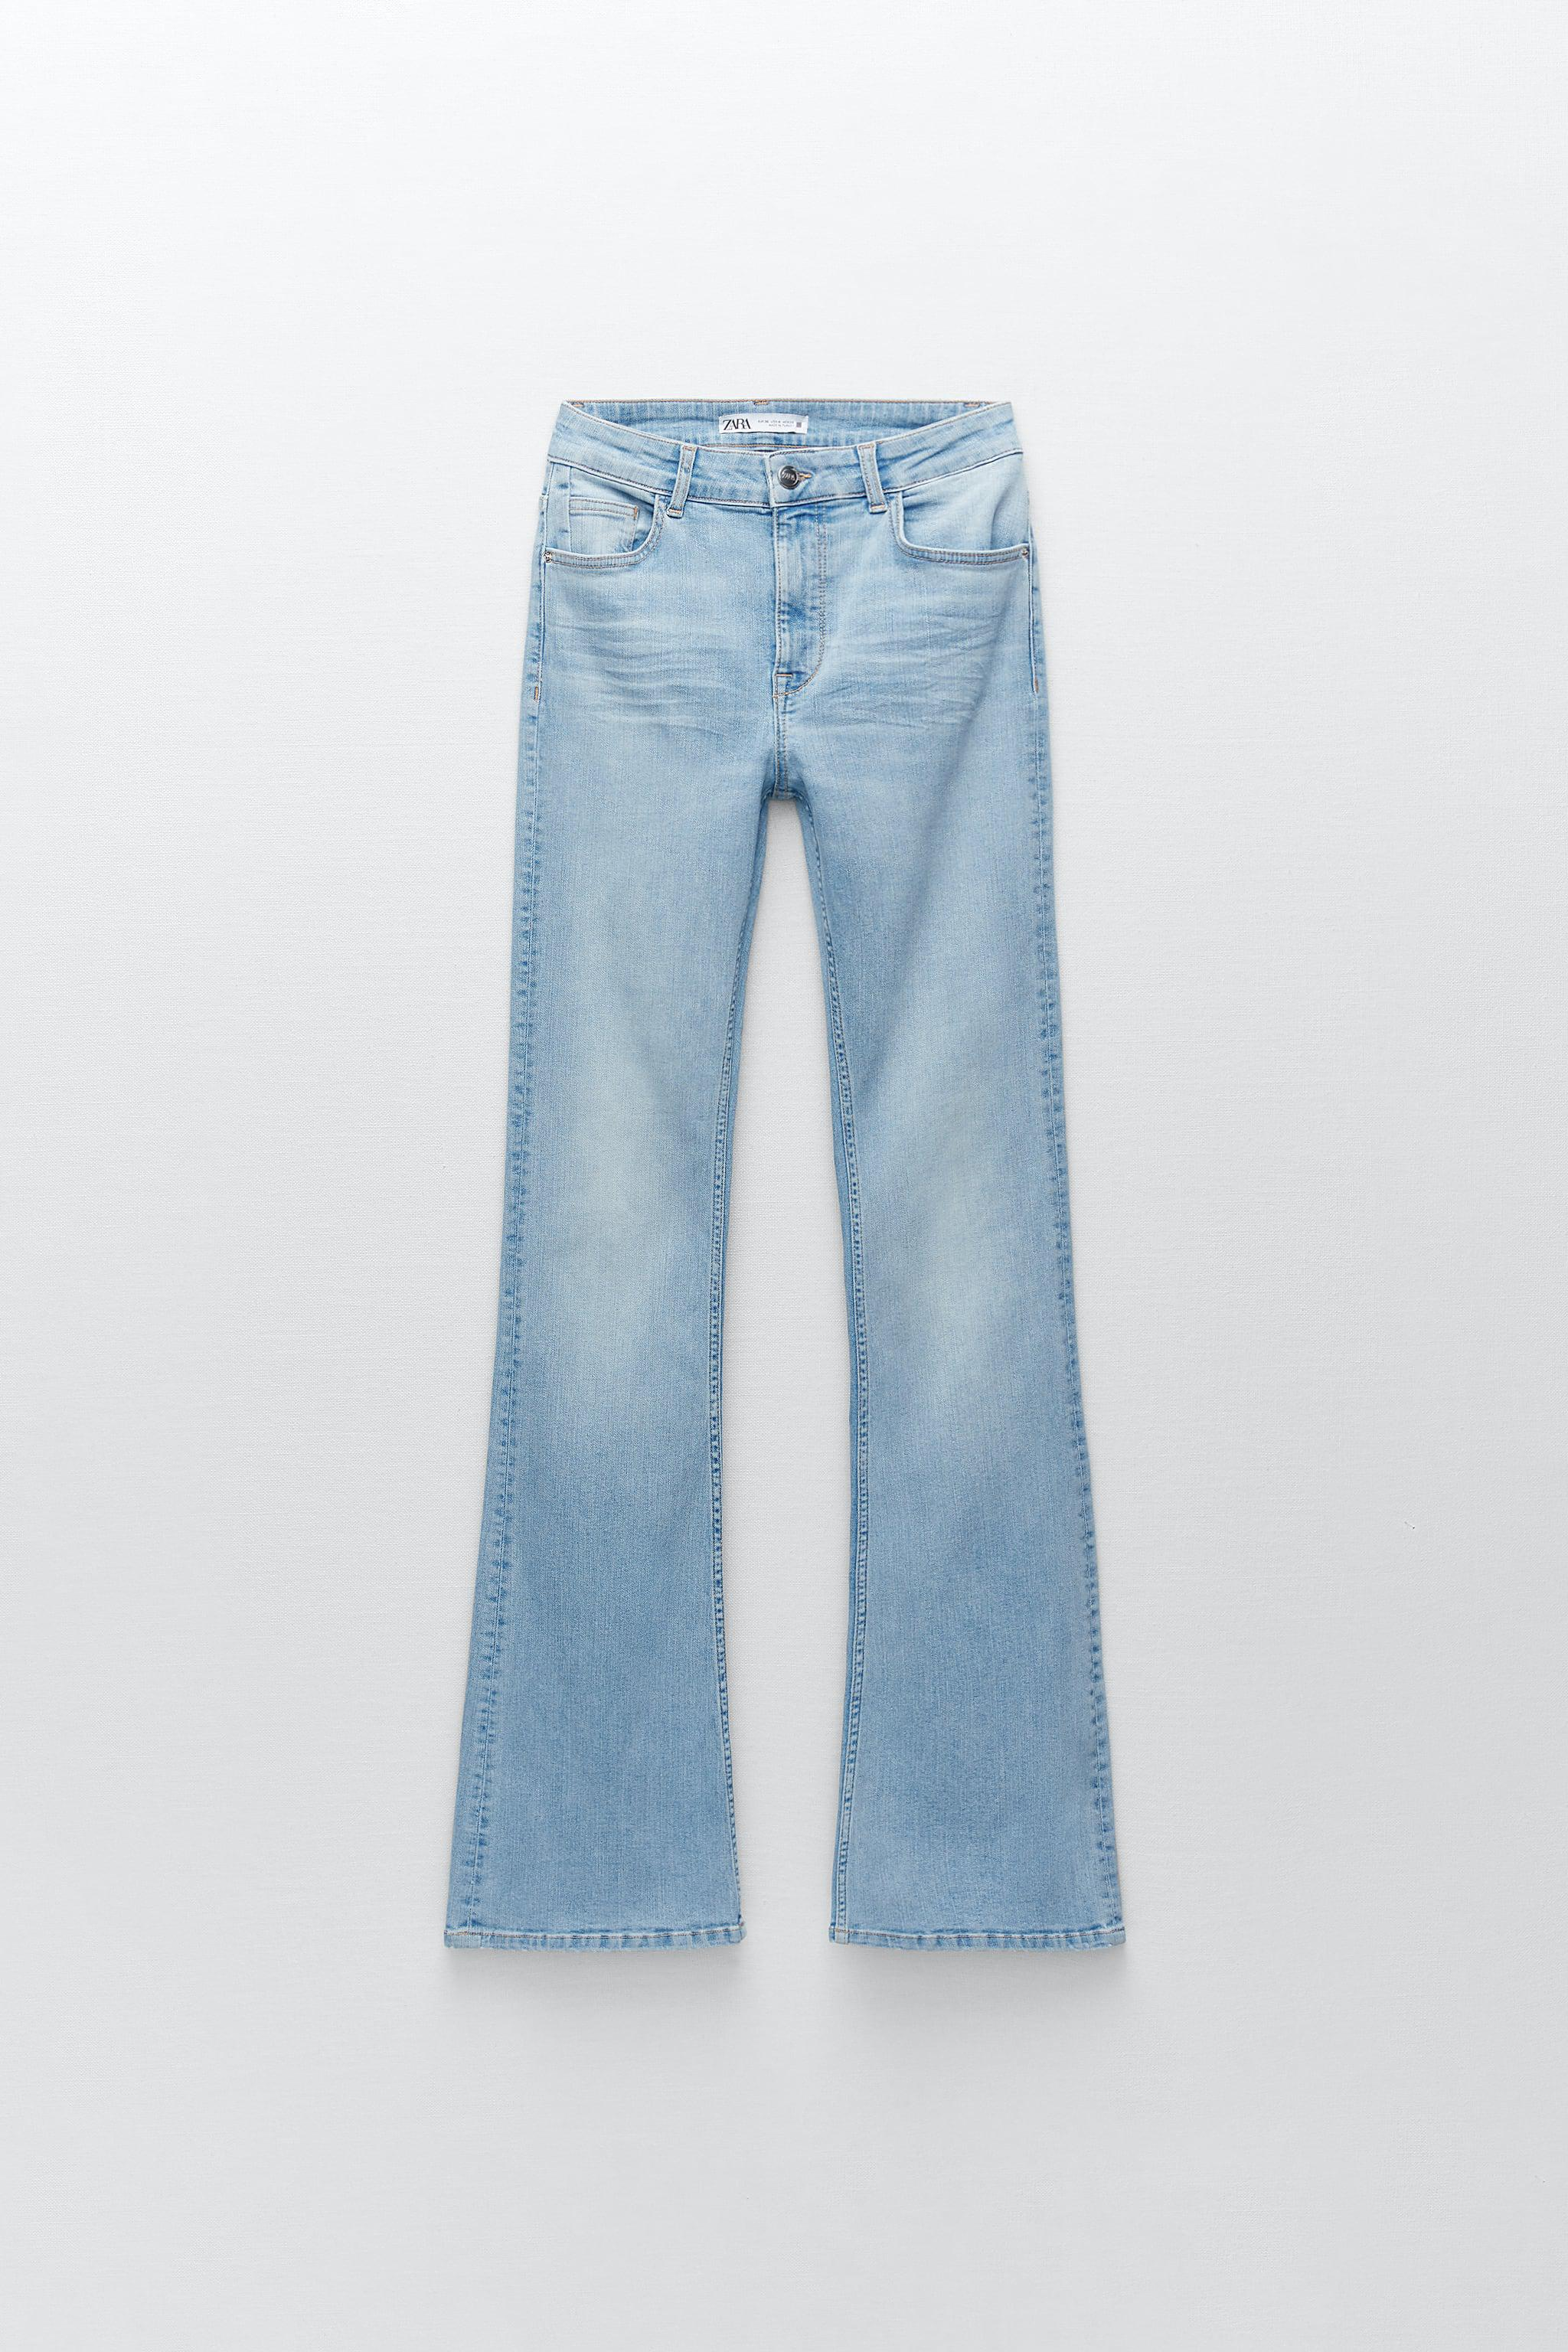 Z1975 HIGH RISE FLARED JEANS 3